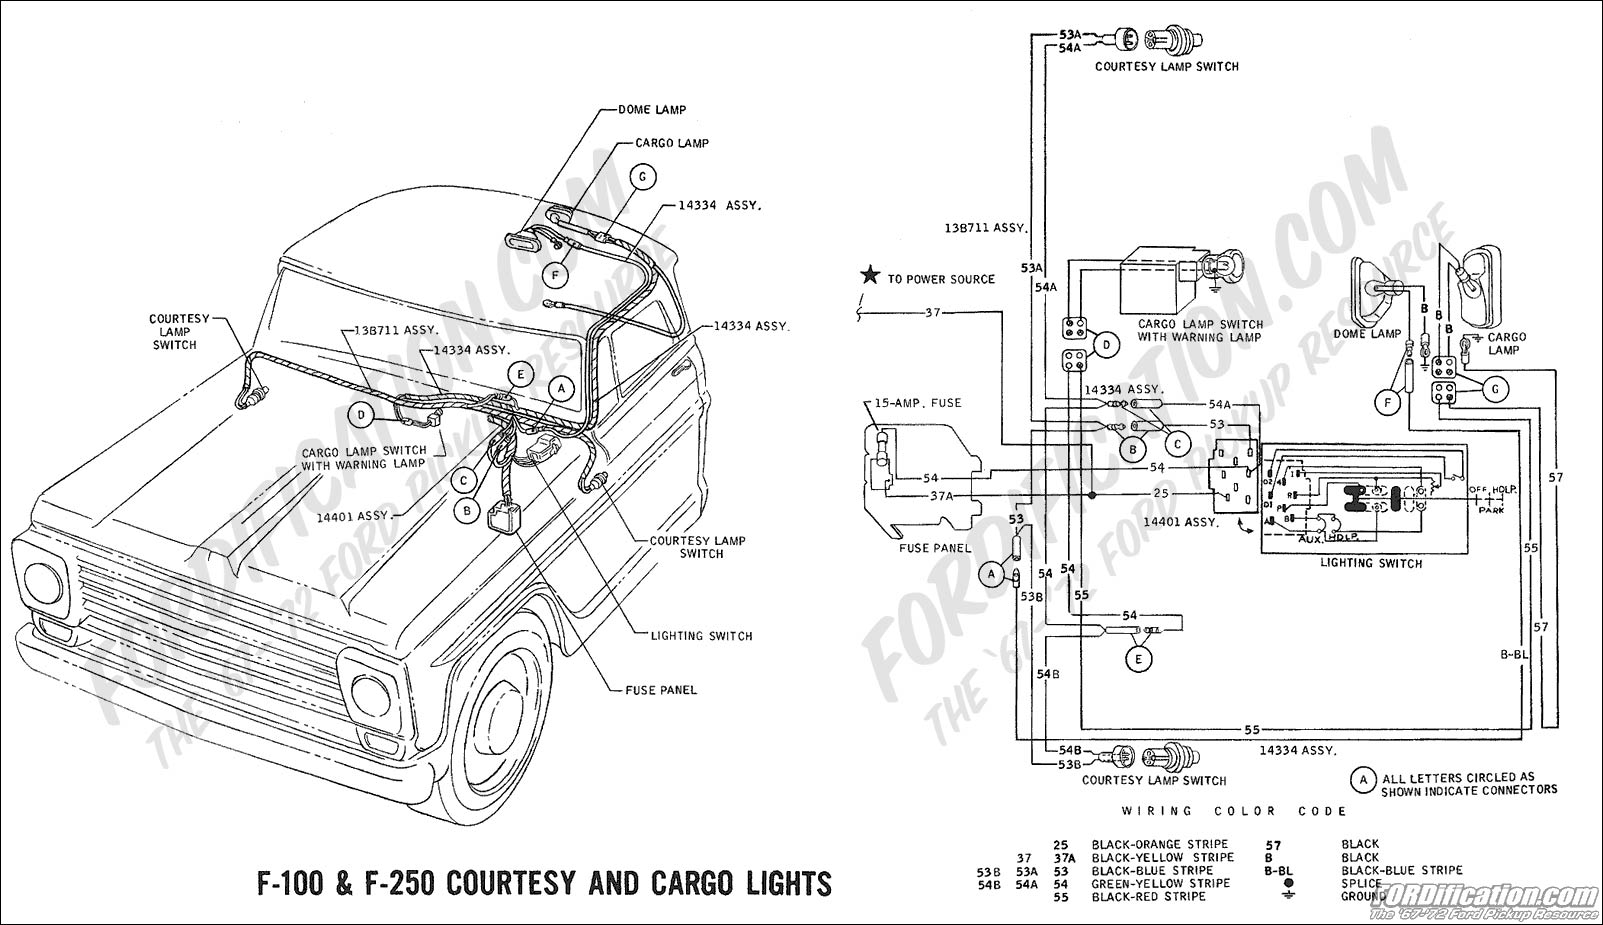 69 f100 wiring diagram ford truck enthusiasts forums light and interior parking brake light wiring i have a diagram and those are the only things missing also i seem to be missing the switches for both